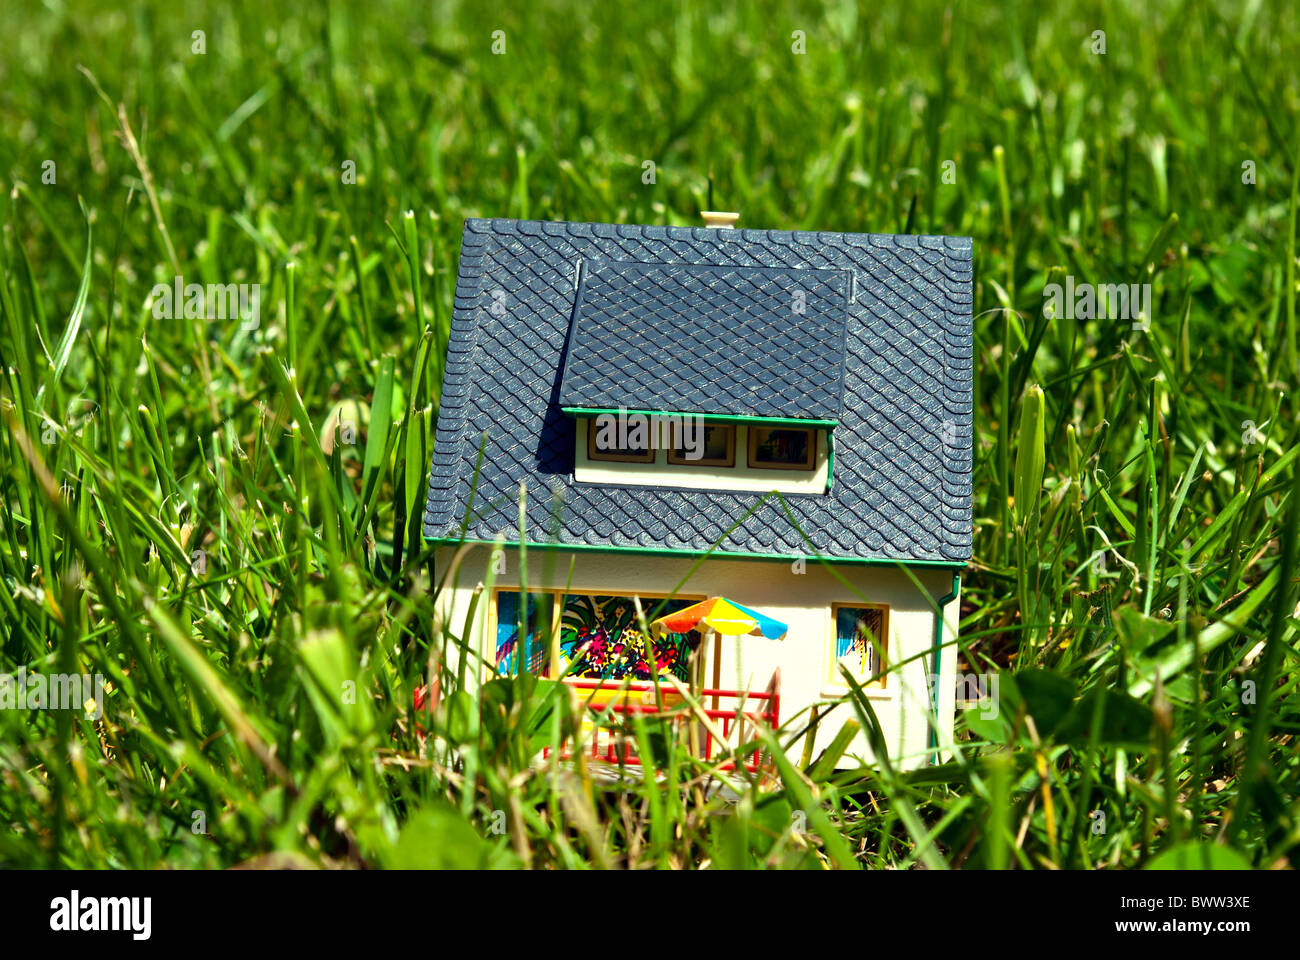 model house on grass - Stock Image